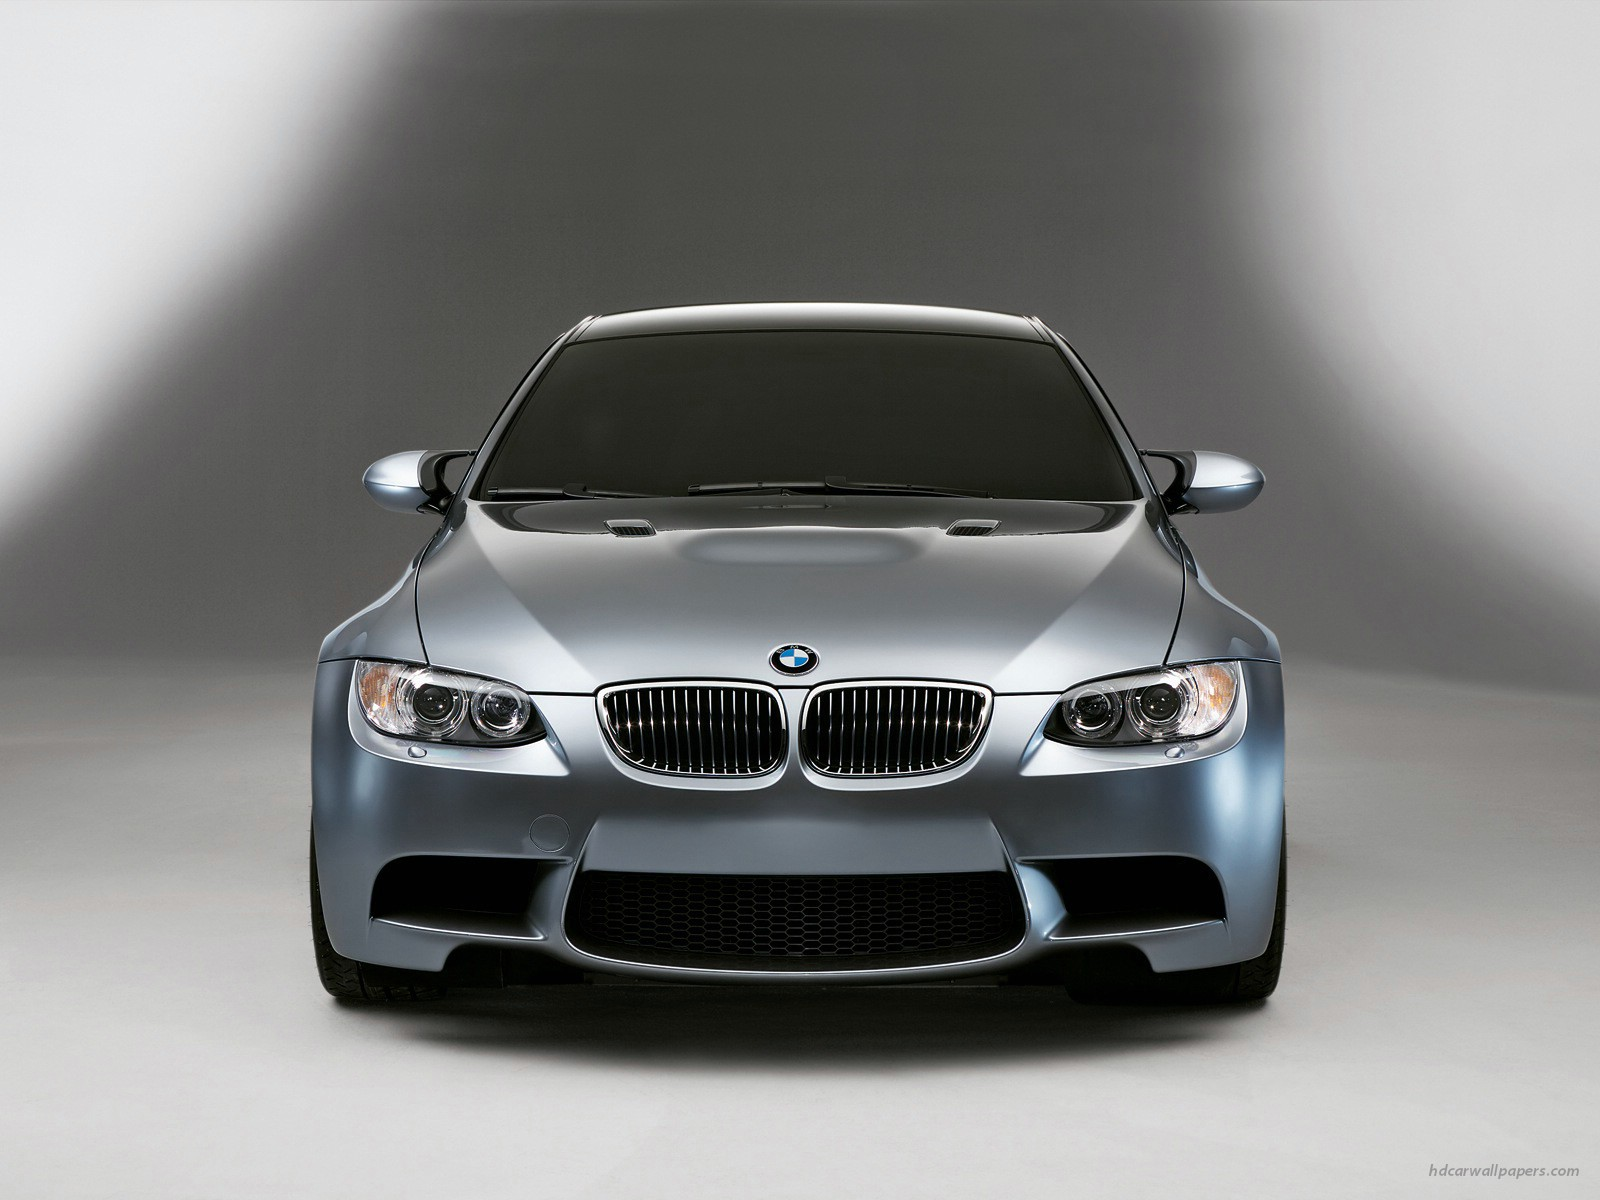 Bmw Wallpaper Hd 2560x1440 Bmw Car Hd Wallpapers 1080p For Mobile